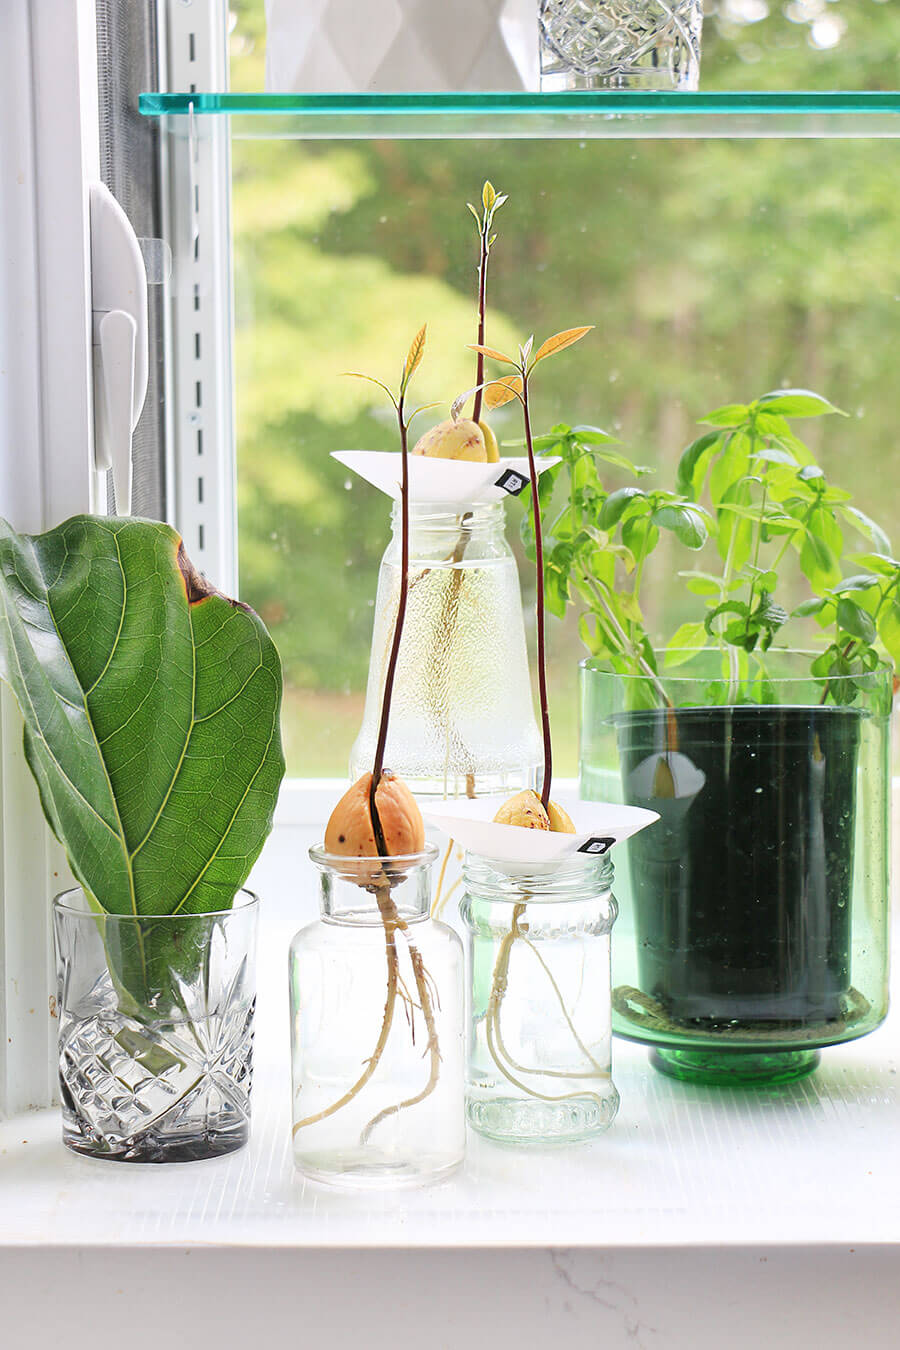 Avocado-plants-with-root-and-small-shoots